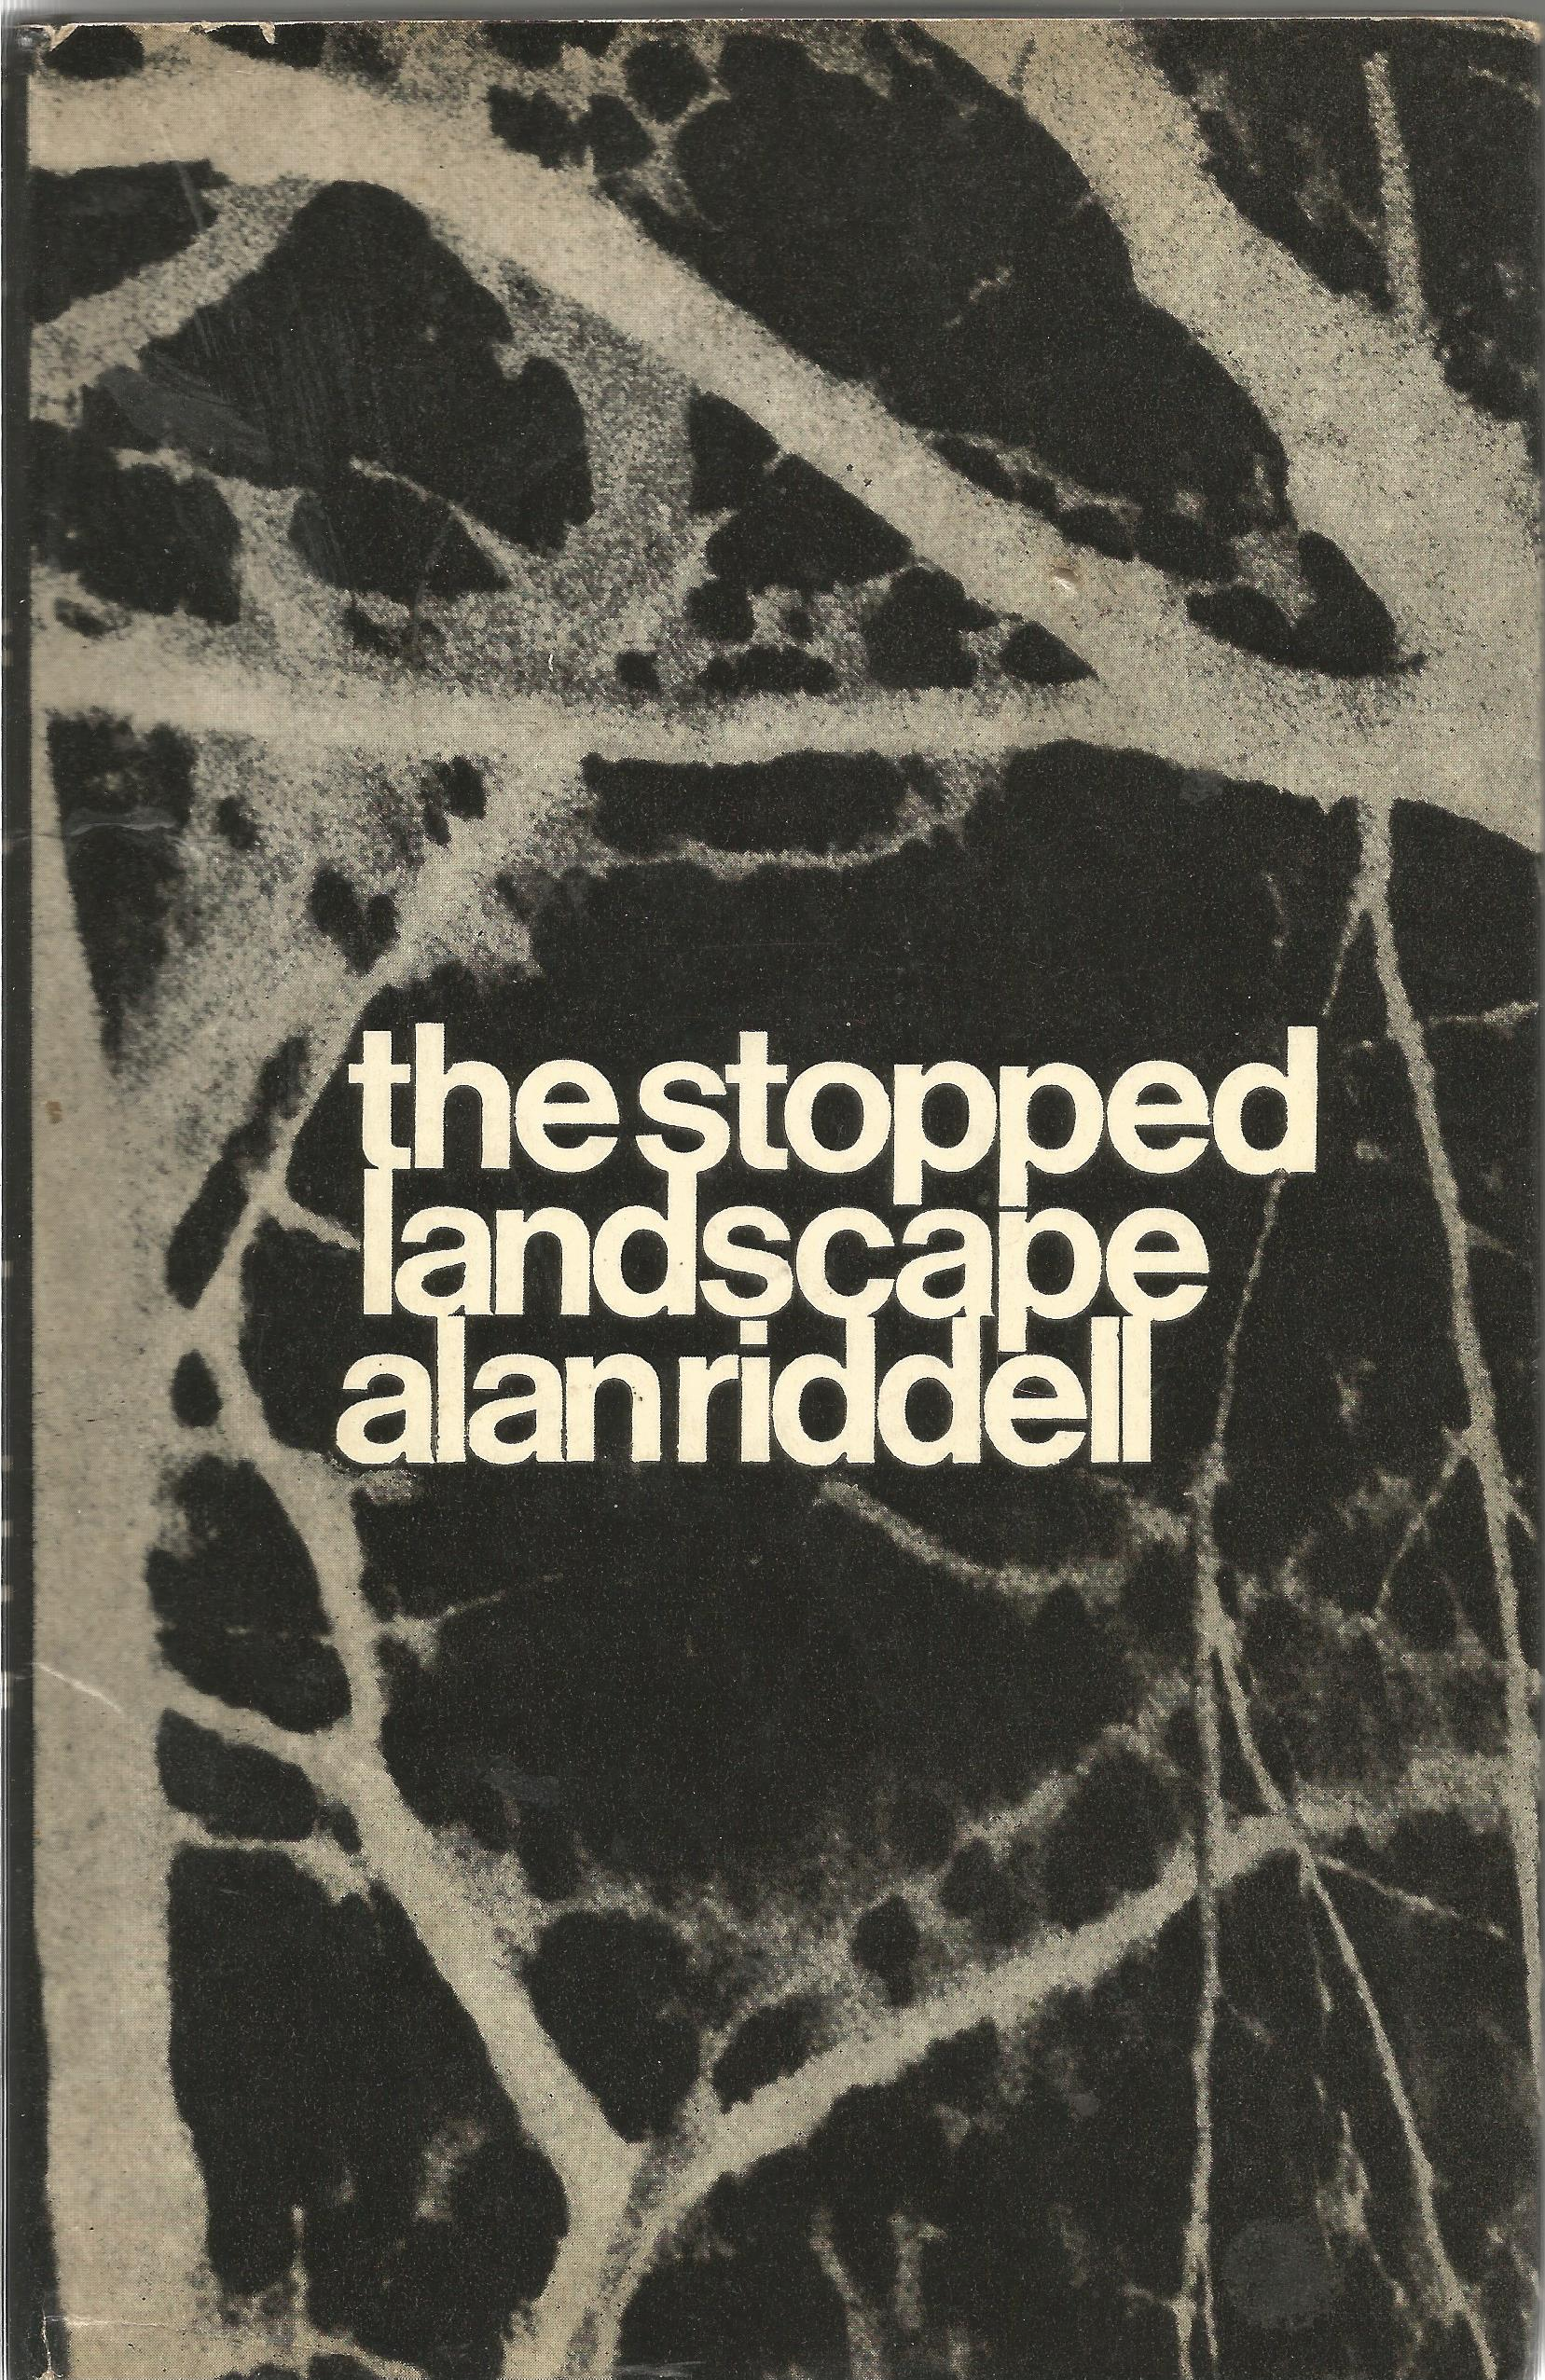 Alan Riddell Hardback Book The Stopped Landscape 1968 signed by the Author on the First Page and